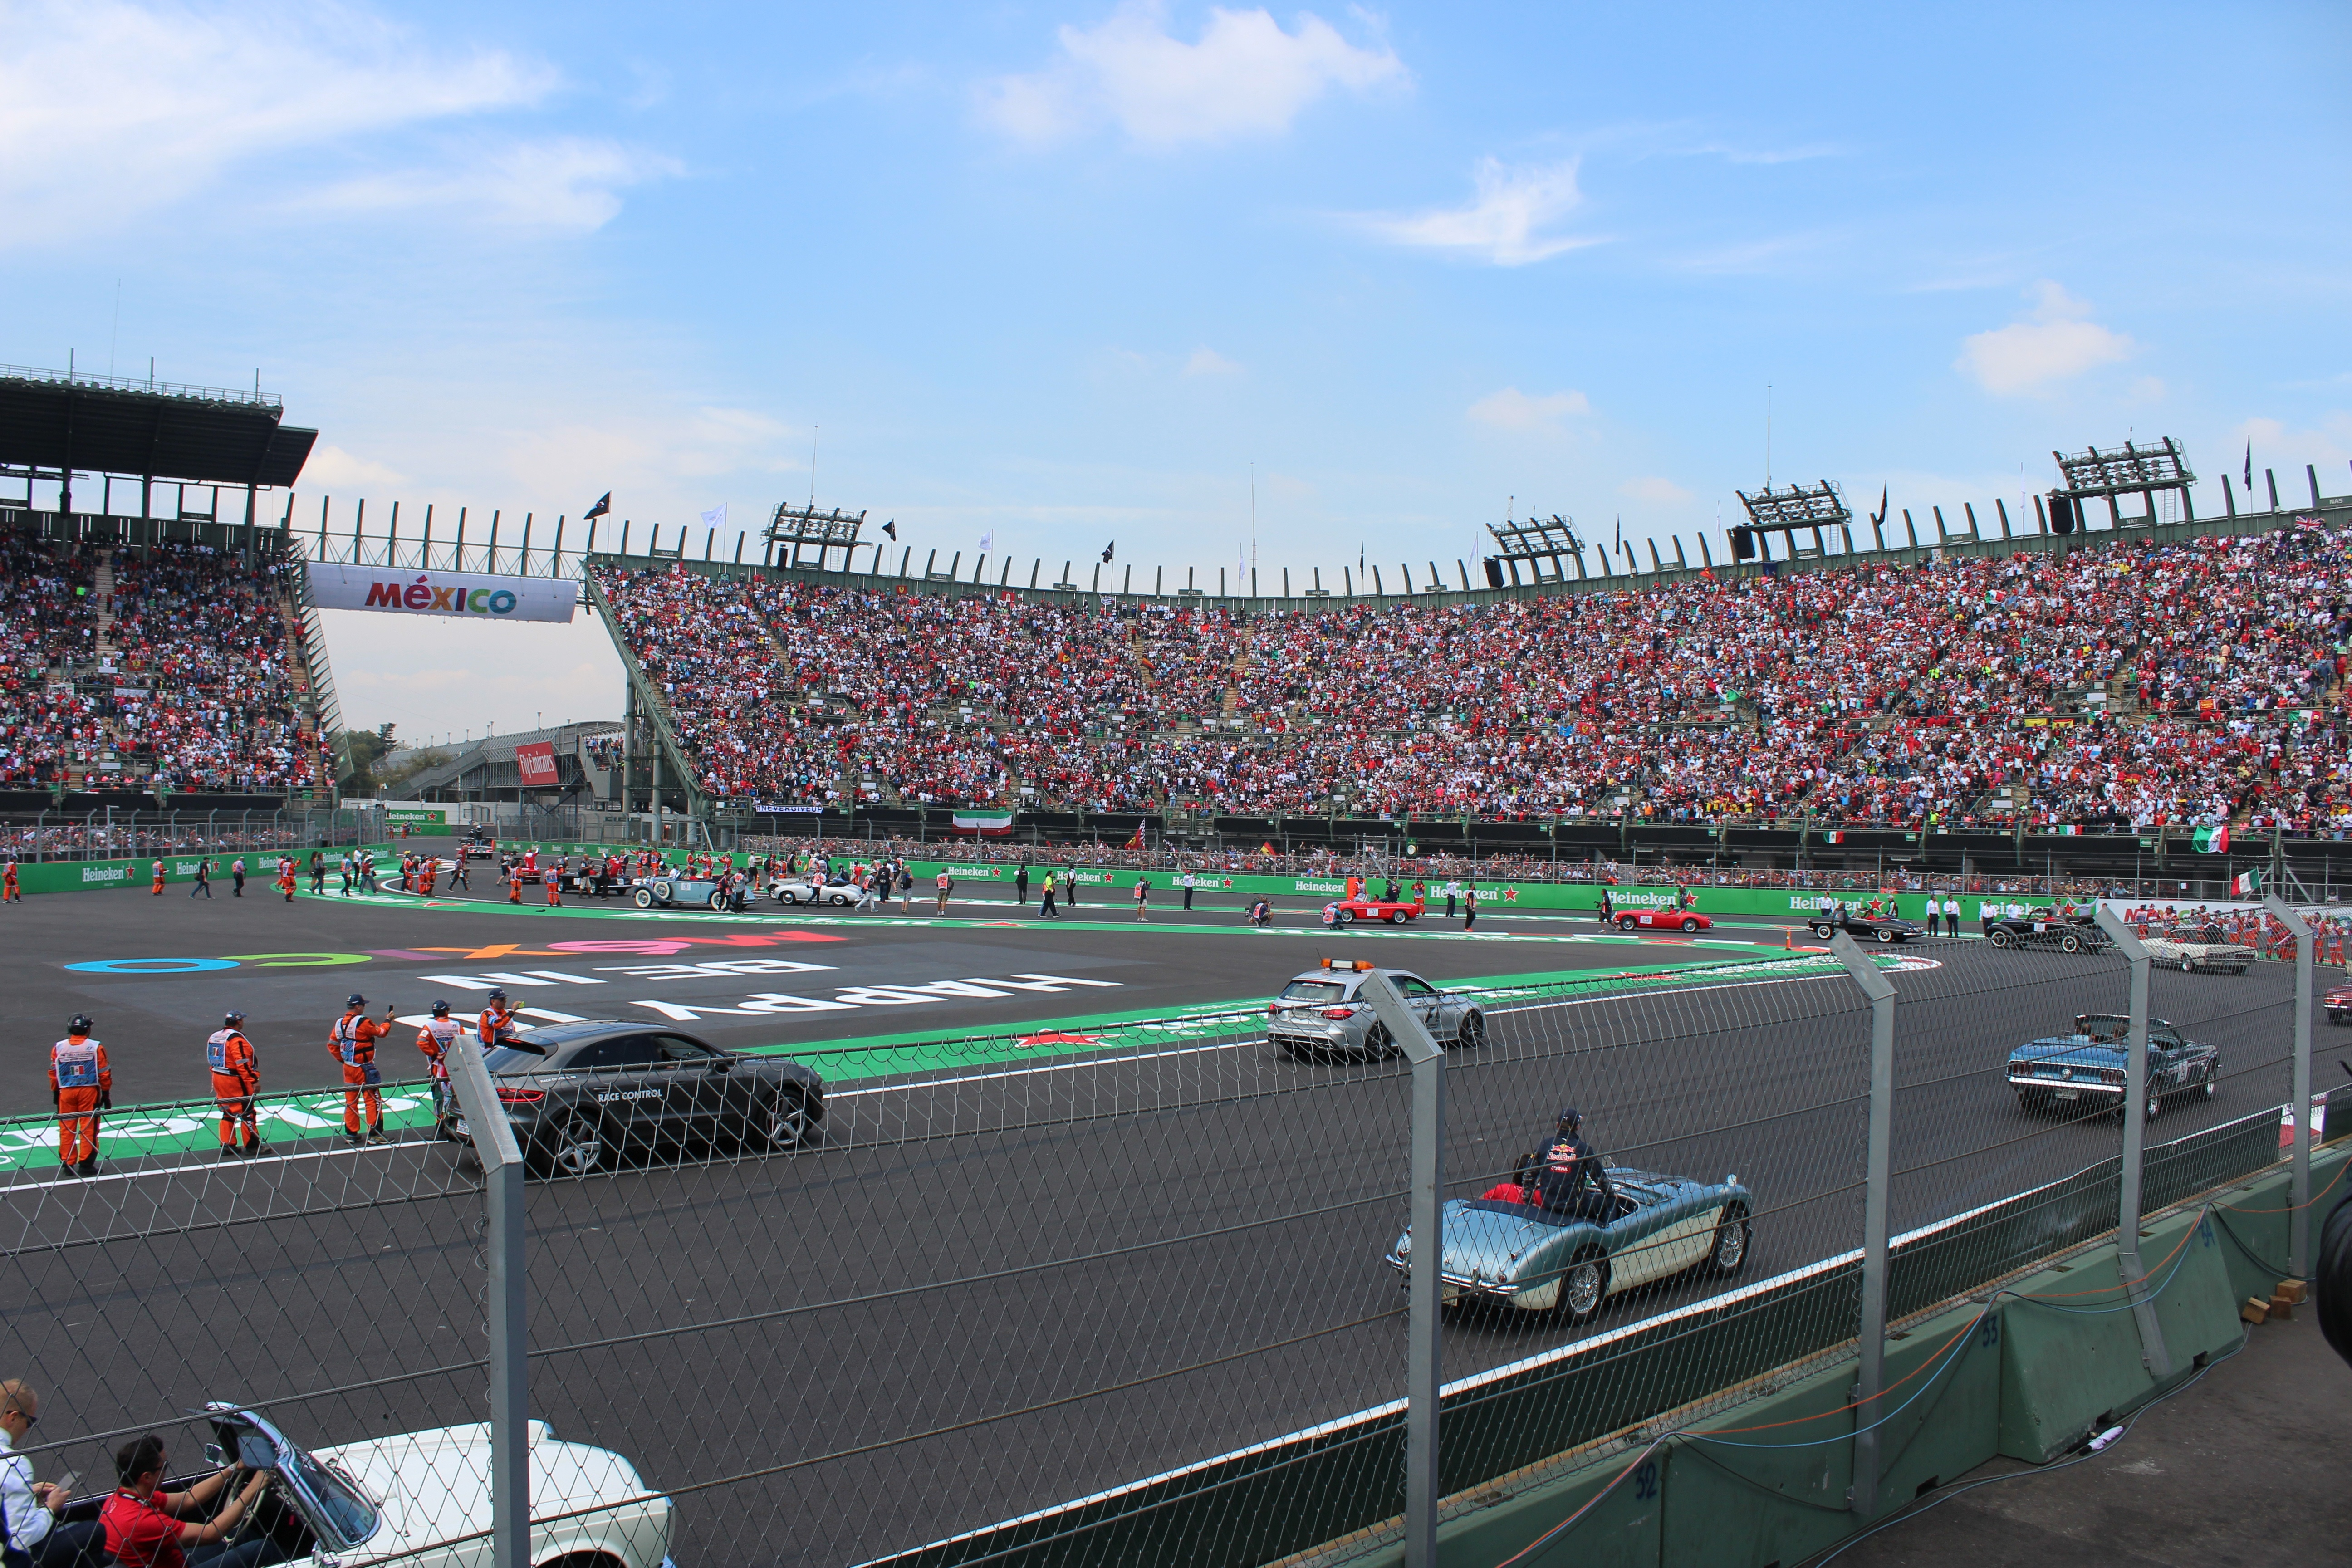 A Breakdown of the Official Tickets for the 2017 Mexican Grand Prix